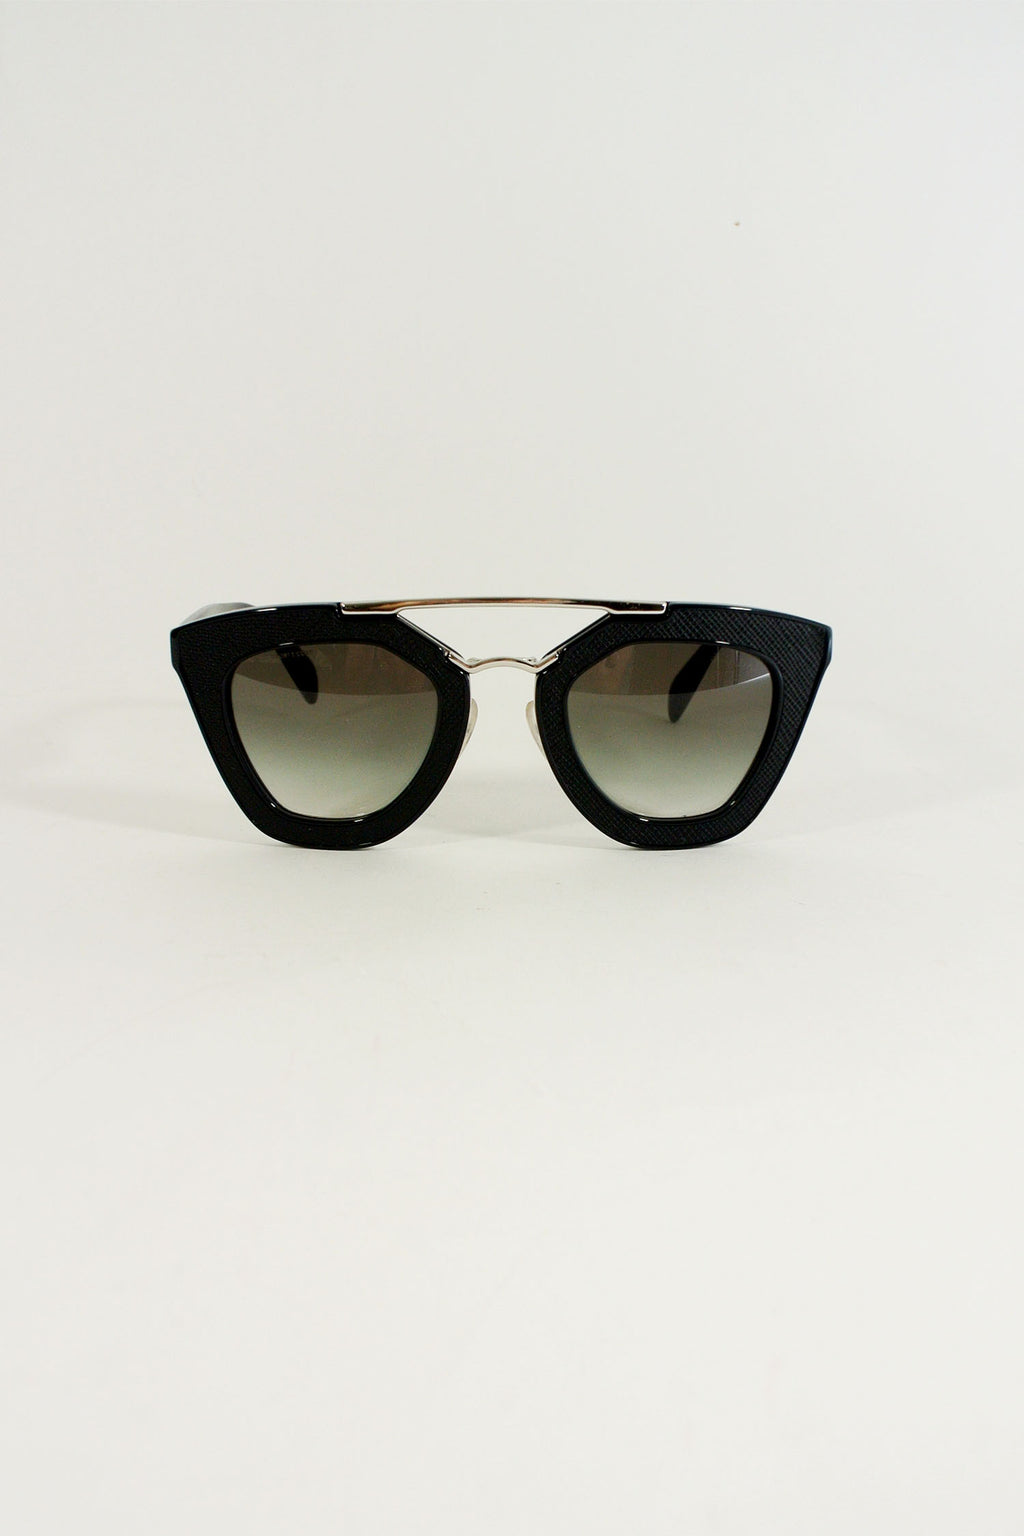 Prada Black Aviators